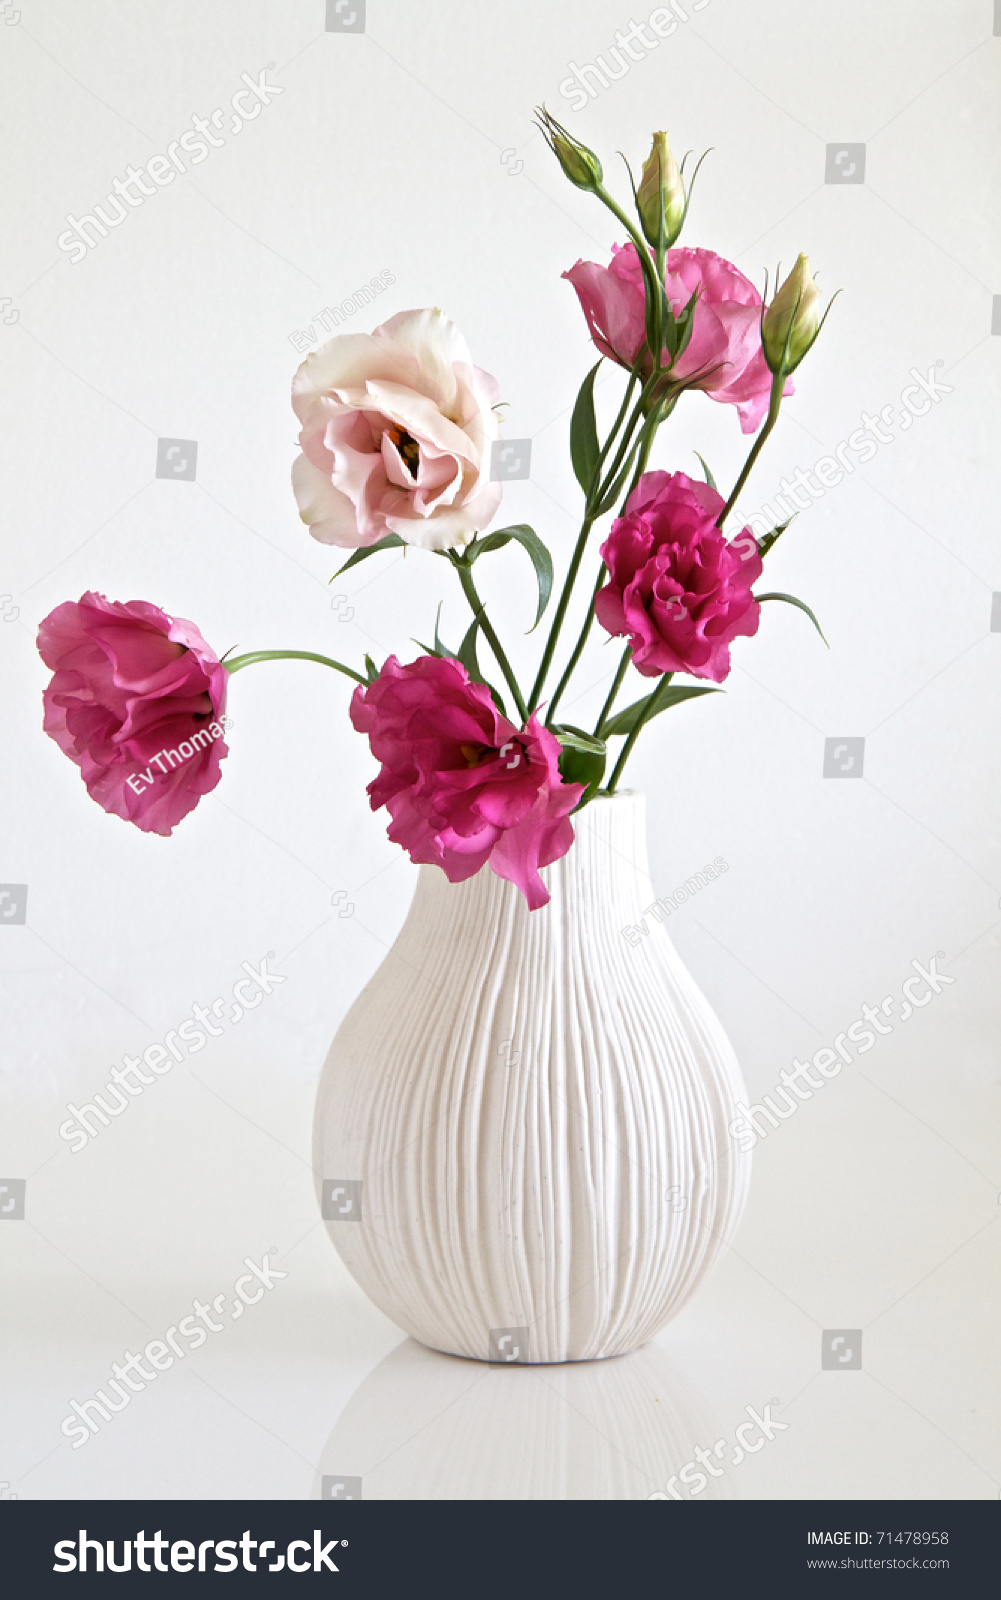 Pink Flowers Vase Stock Photo Edit Now 71478958 Shutterstock